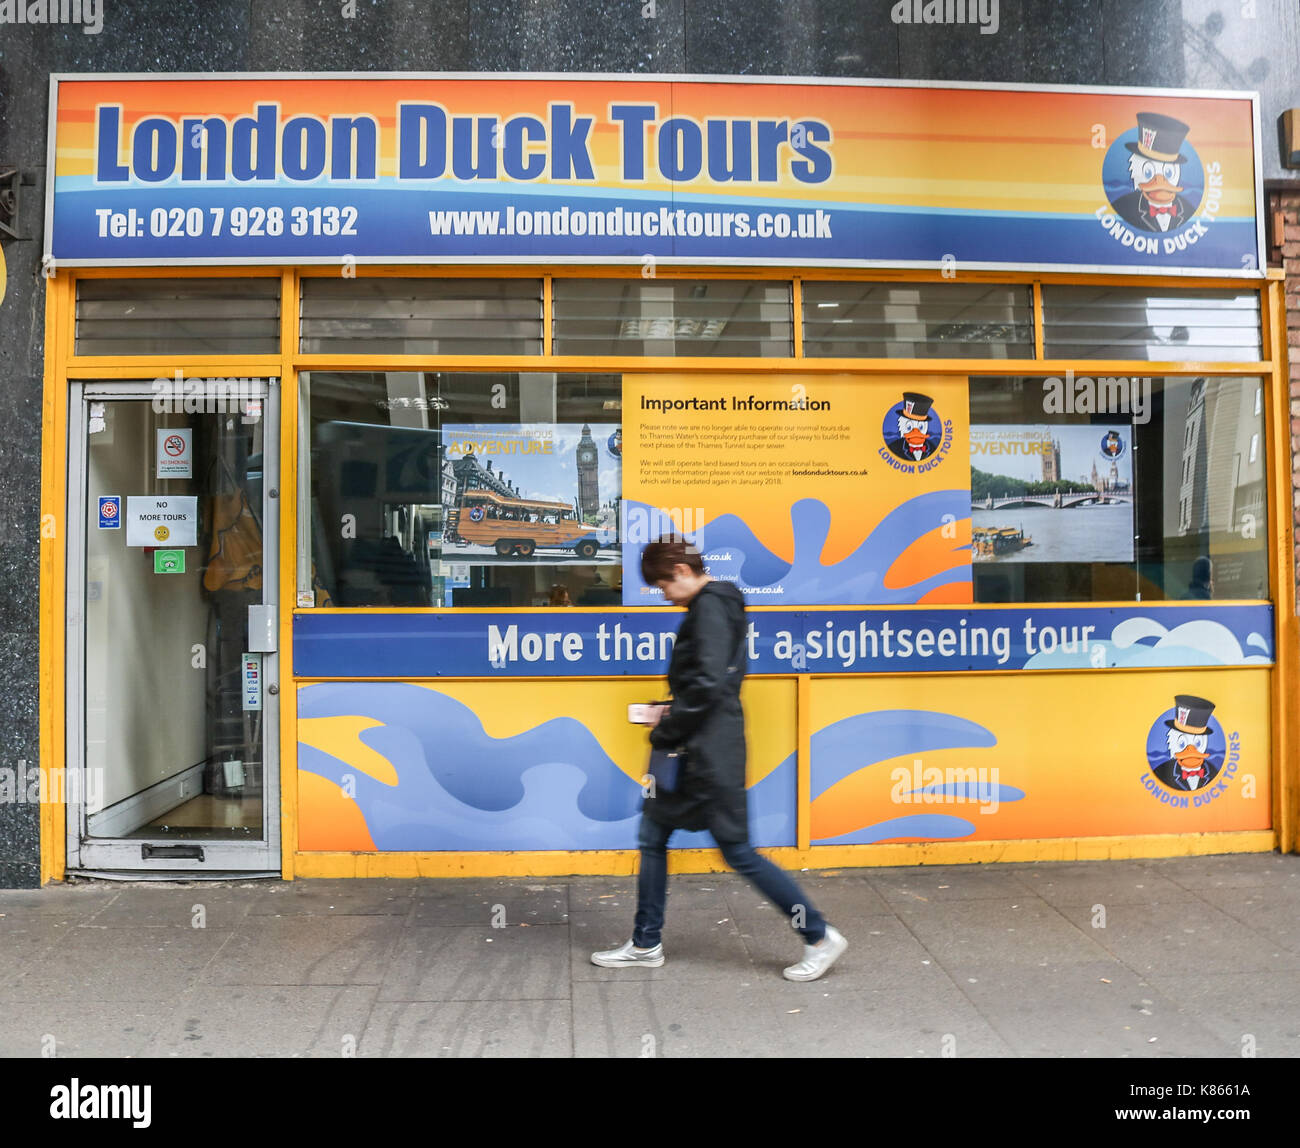 London, UK. 18th Sep, 2017. The amphibious London Duck Tours ceases operating after losing access to the slipway on the Albert Embankment due to the Thames Water supersewer construction works. The amphibious Ducks played a vital role in the second World War and were originally used to carry supplies from ships to points on land saving lives Credit: amer ghazzal/Alamy Live News - Stock Image